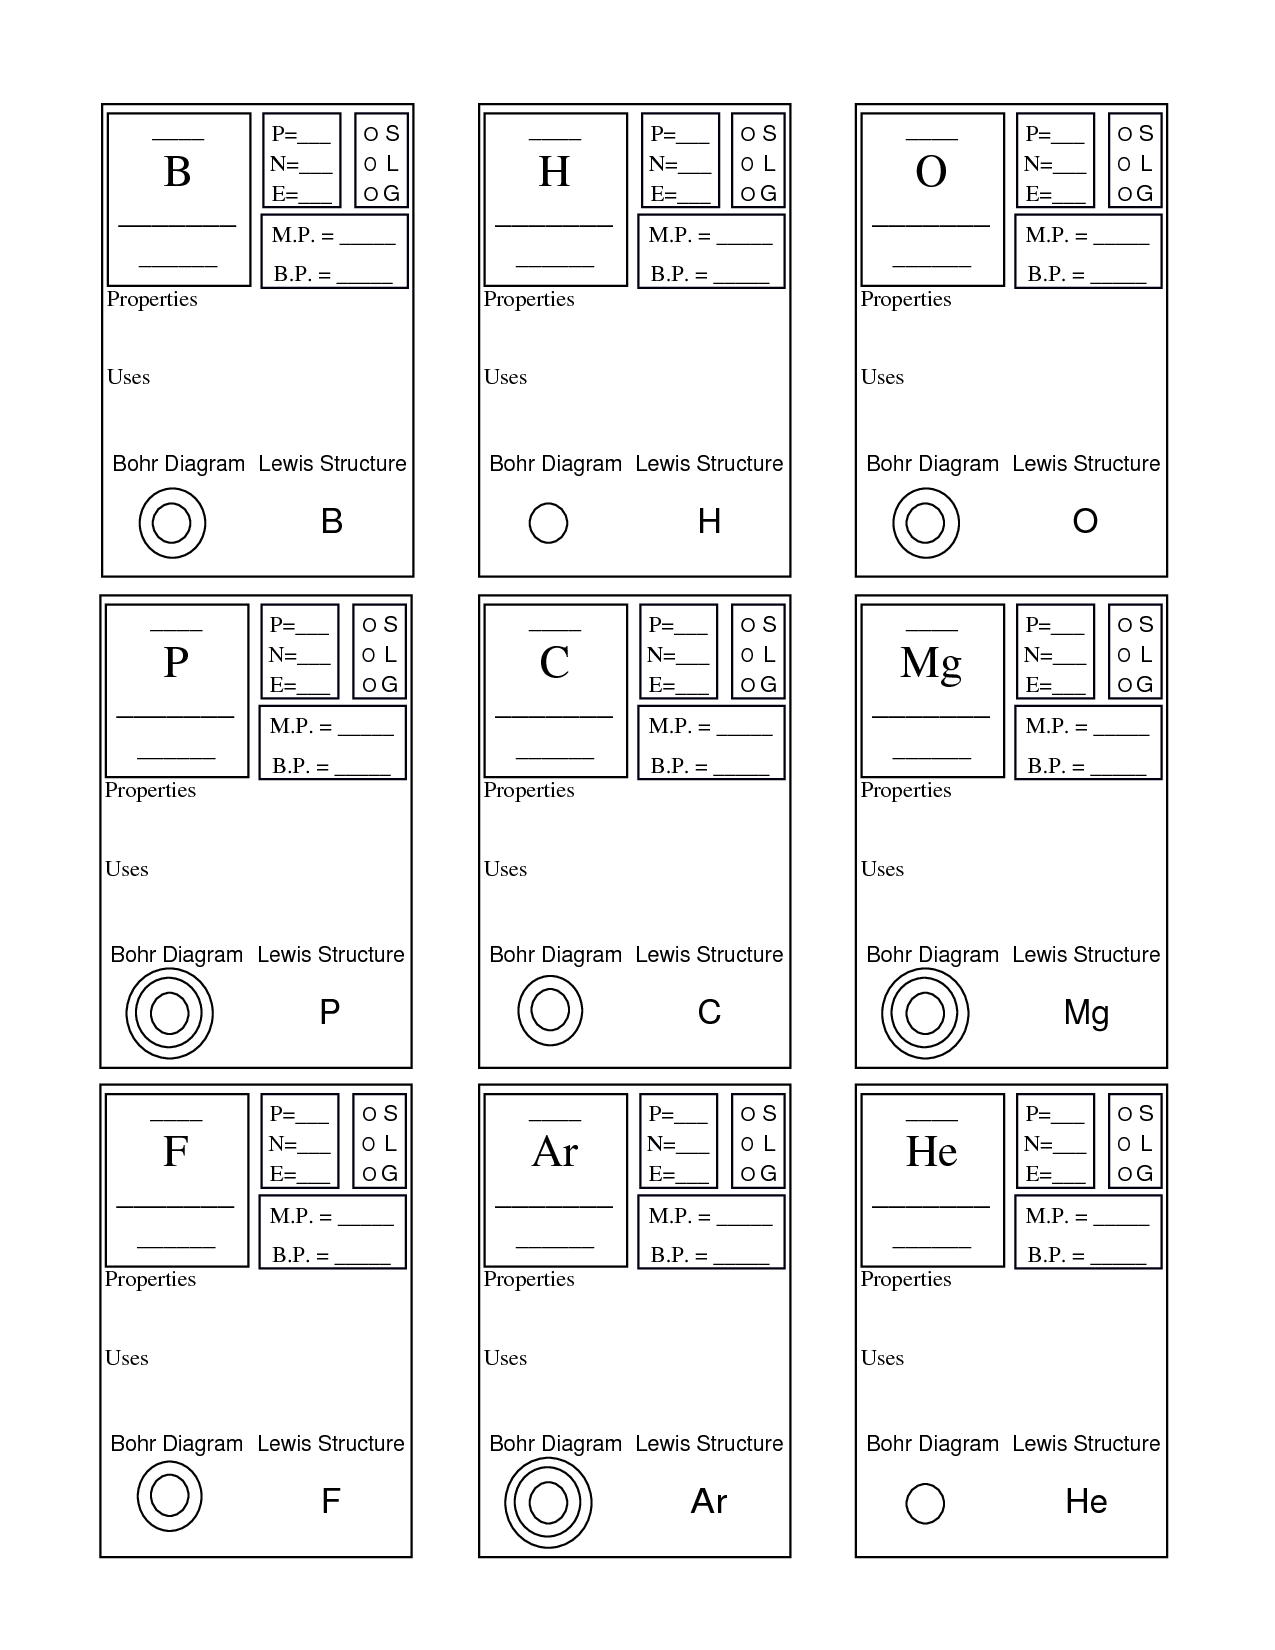 Periodic table basics worksheet answer key education pinterest periodic table basics worksheet answer key urtaz Choice Image